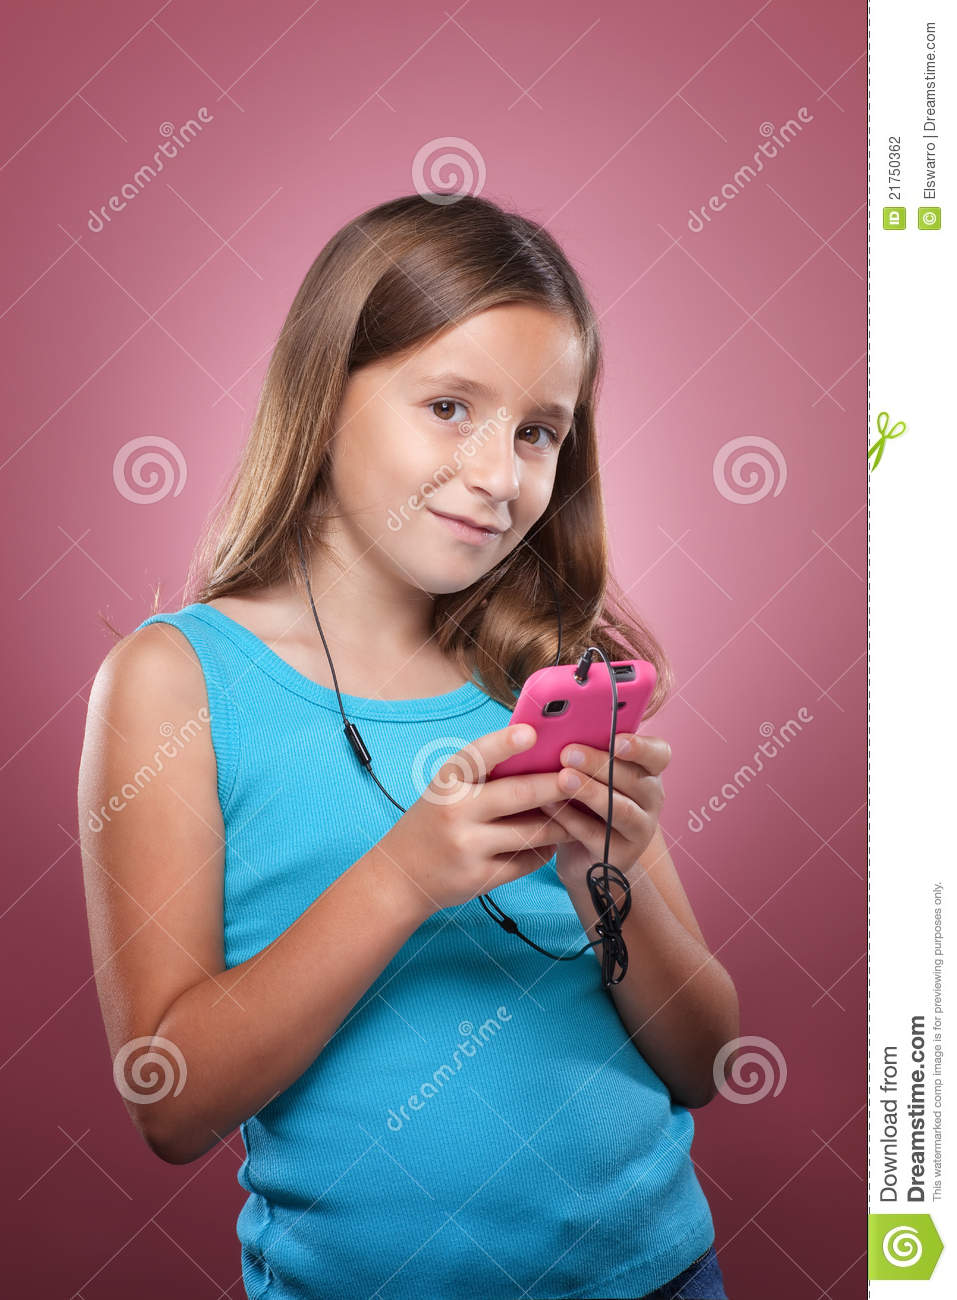 Girl With The Blog: Young Girl With Smart Phone Stock Photo